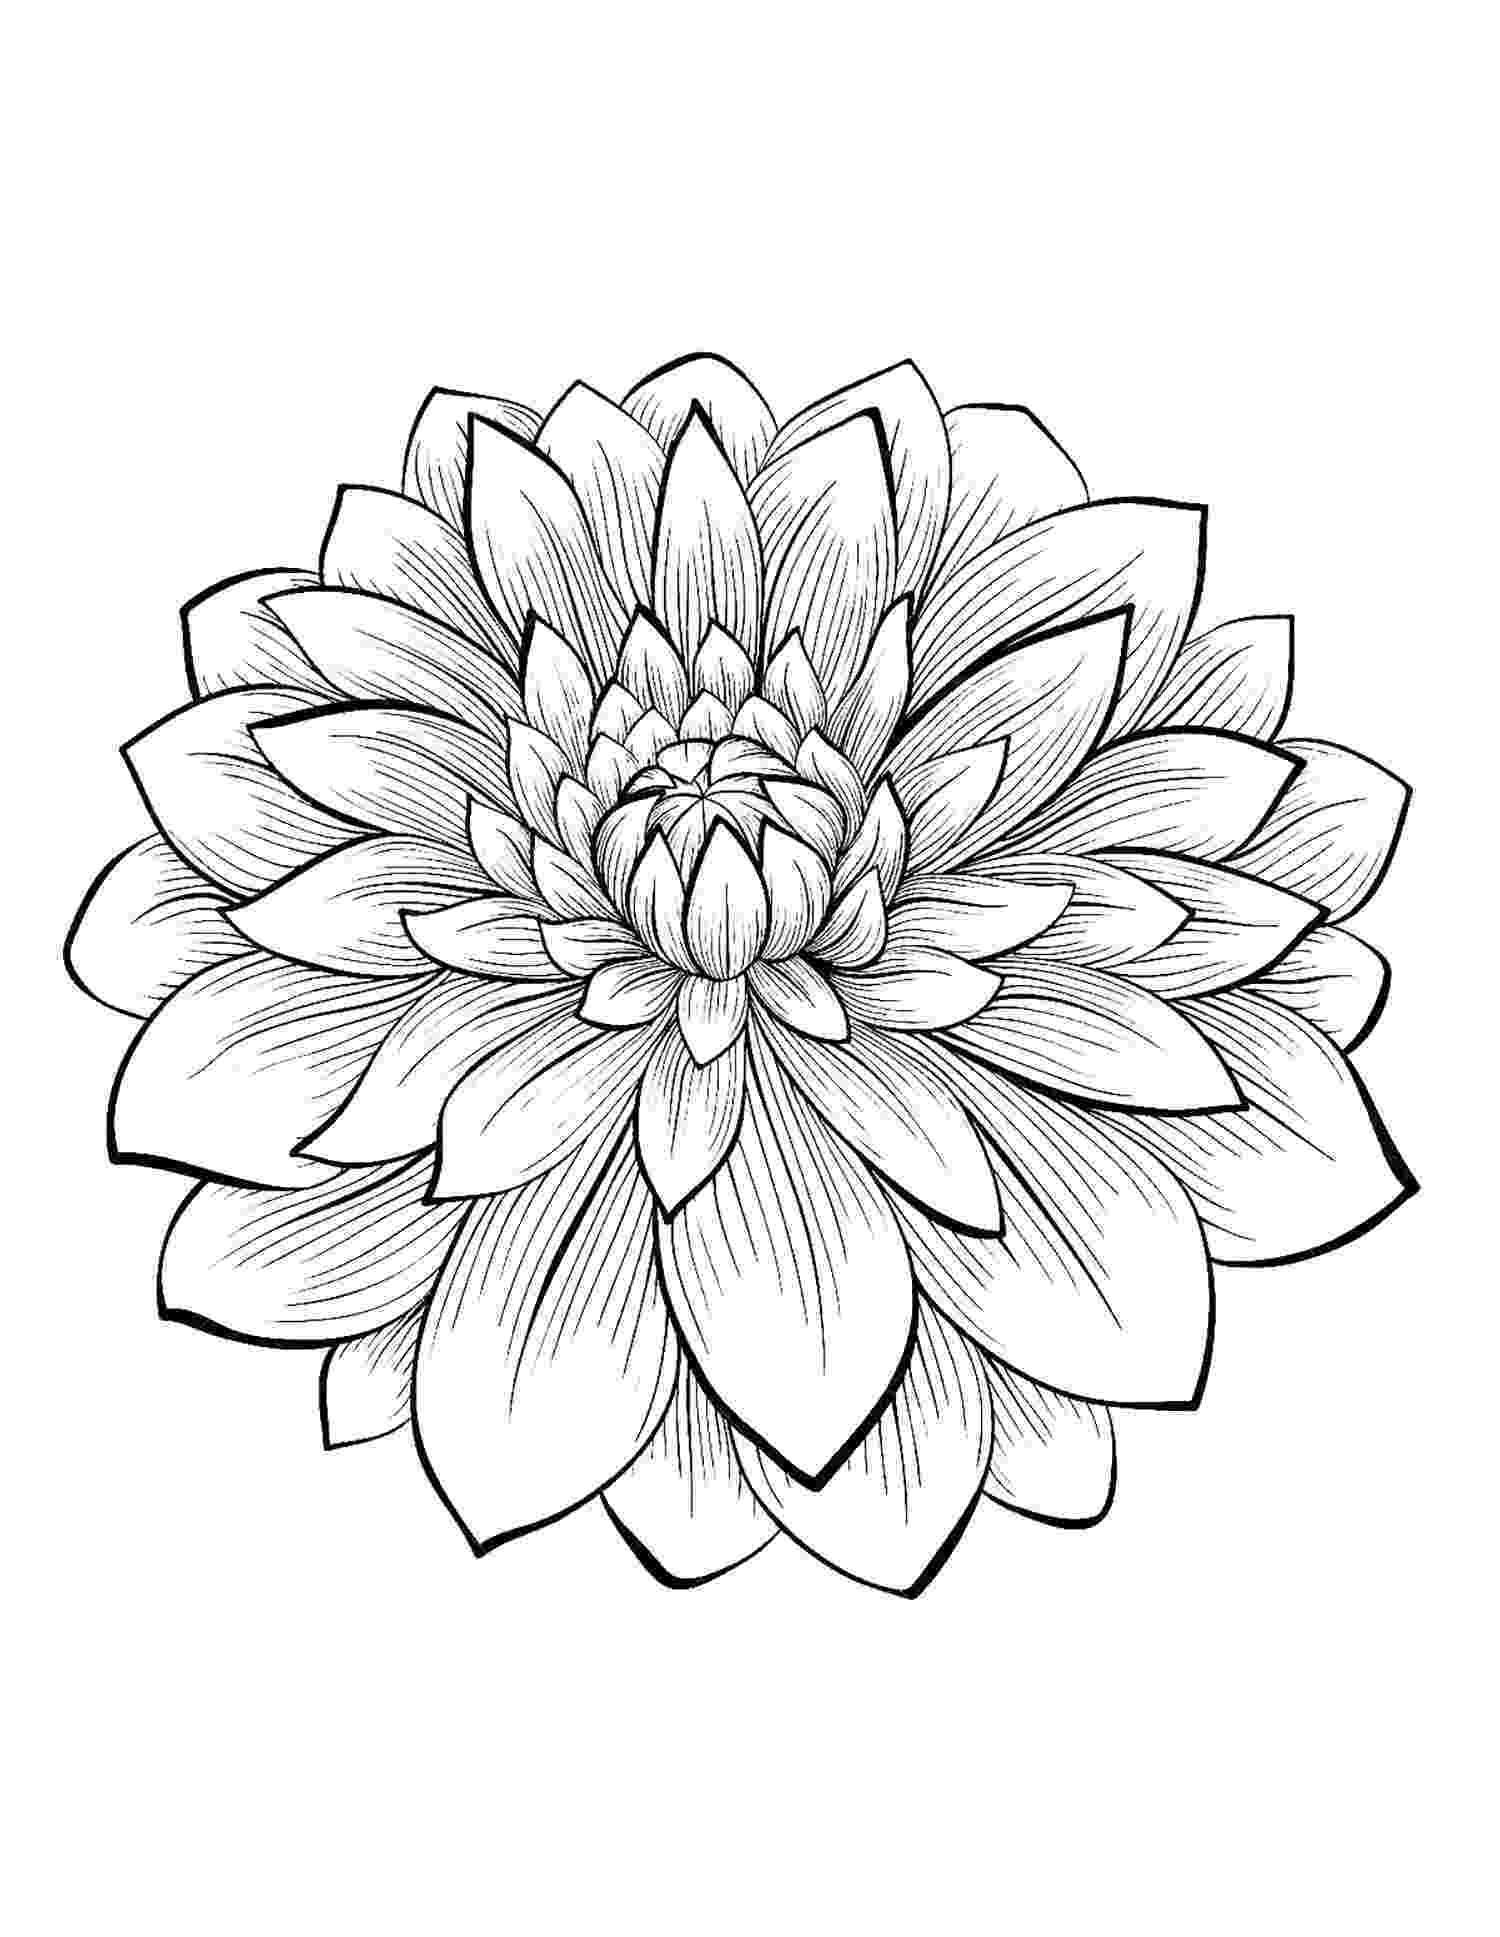 adult flower coloring pages detailed flower coloring pages to download and print for free pages coloring adult flower